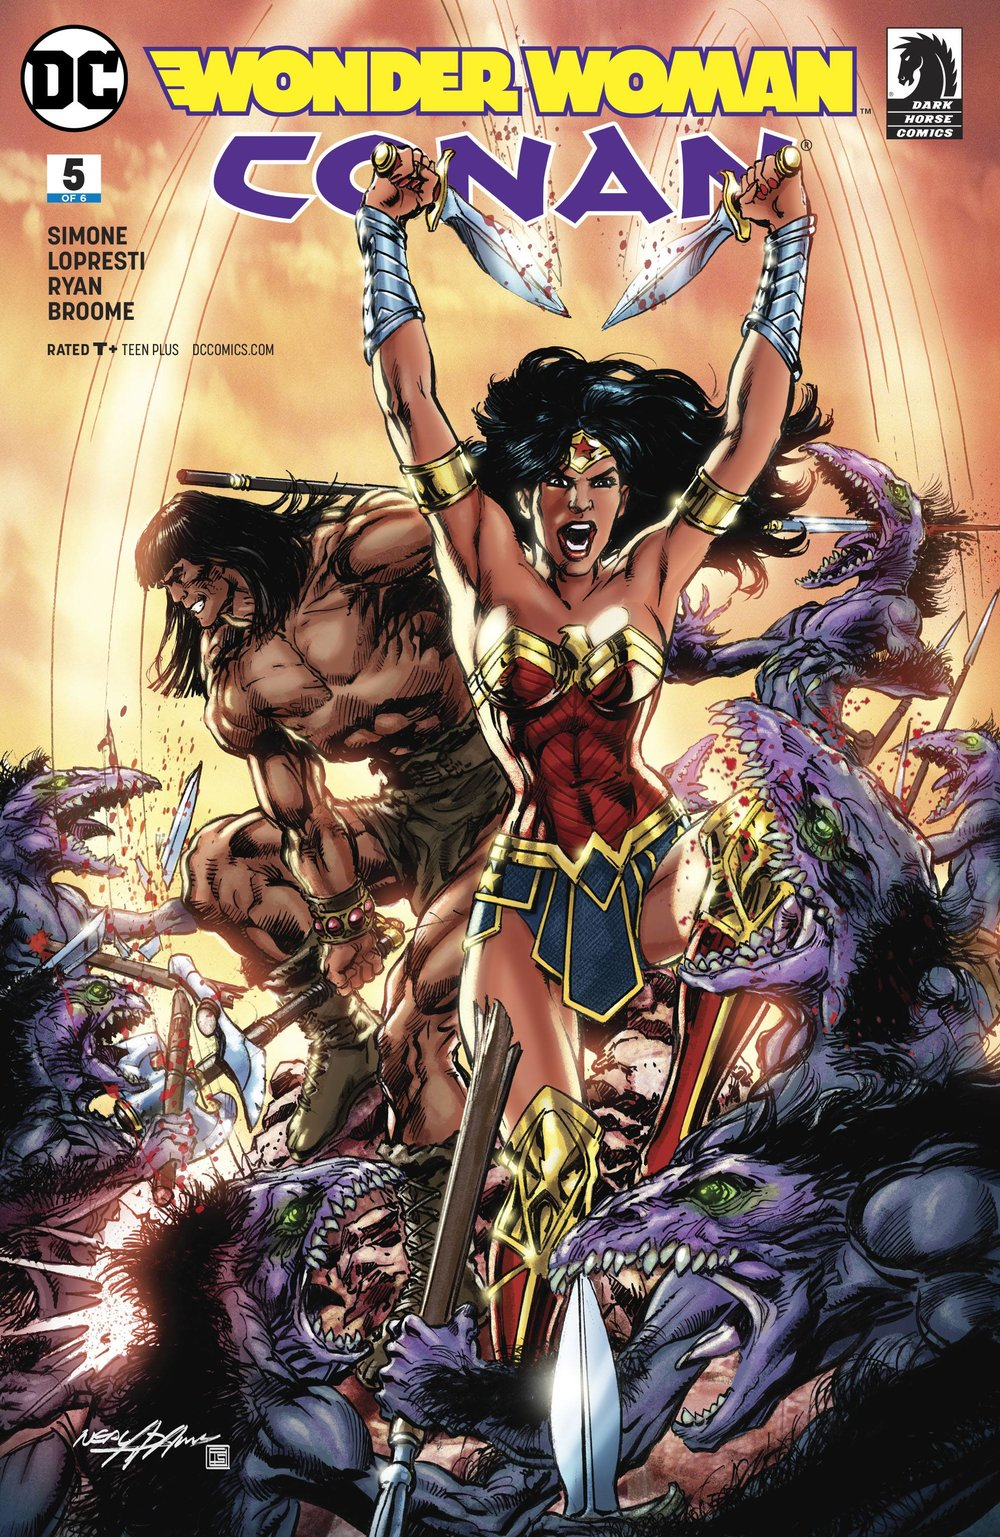 WONDER WOMAN CONAN 5 of 6 VAR ED.jpg